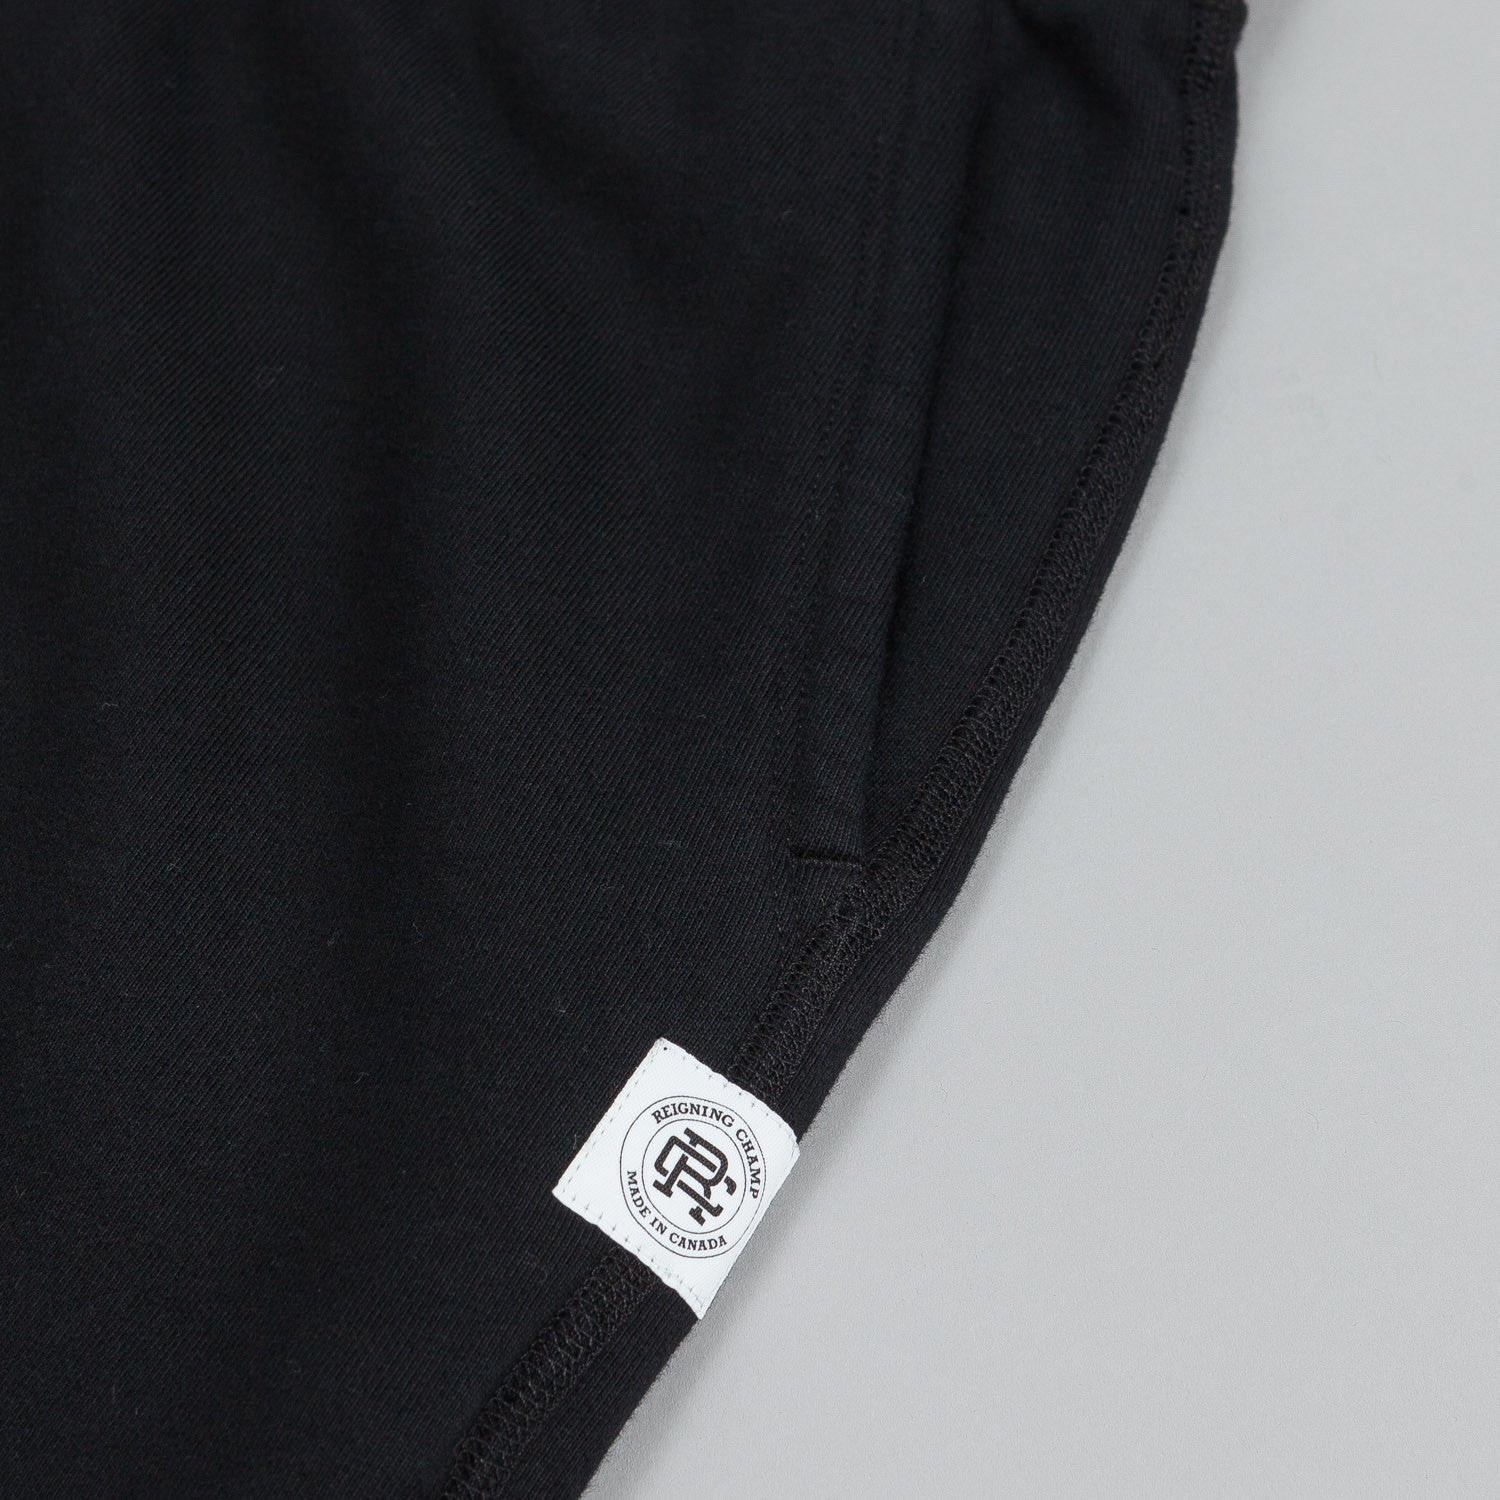 Reigning Champ Core Sweatpant Black